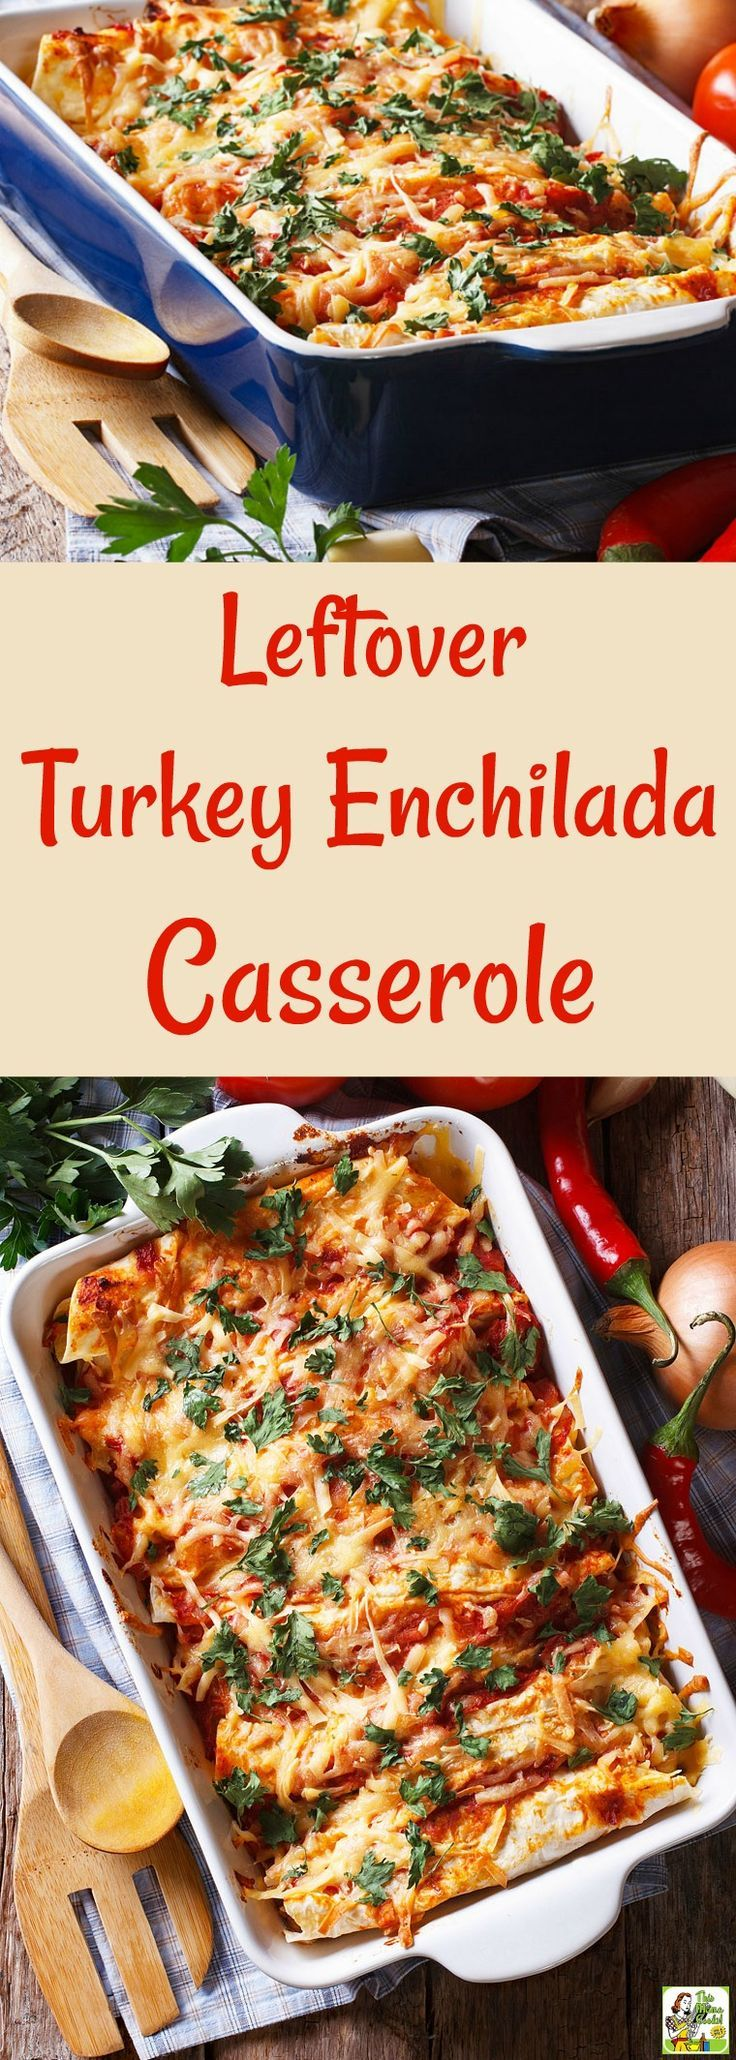 Got too much turkey? Make Leftover Turkey Enchilada Casserole! Try this turkey enchilada casserole recipe after Thanksgiving. This gluten free enchilada casserole recipe also works with many types of meats like shredded pork, beef, or ground taco meat. #turkey #thanksgiving #glutenfree #tacotuesday #taconight #casserole #mexicanfood #onepot #healthyrecipe #leftovers